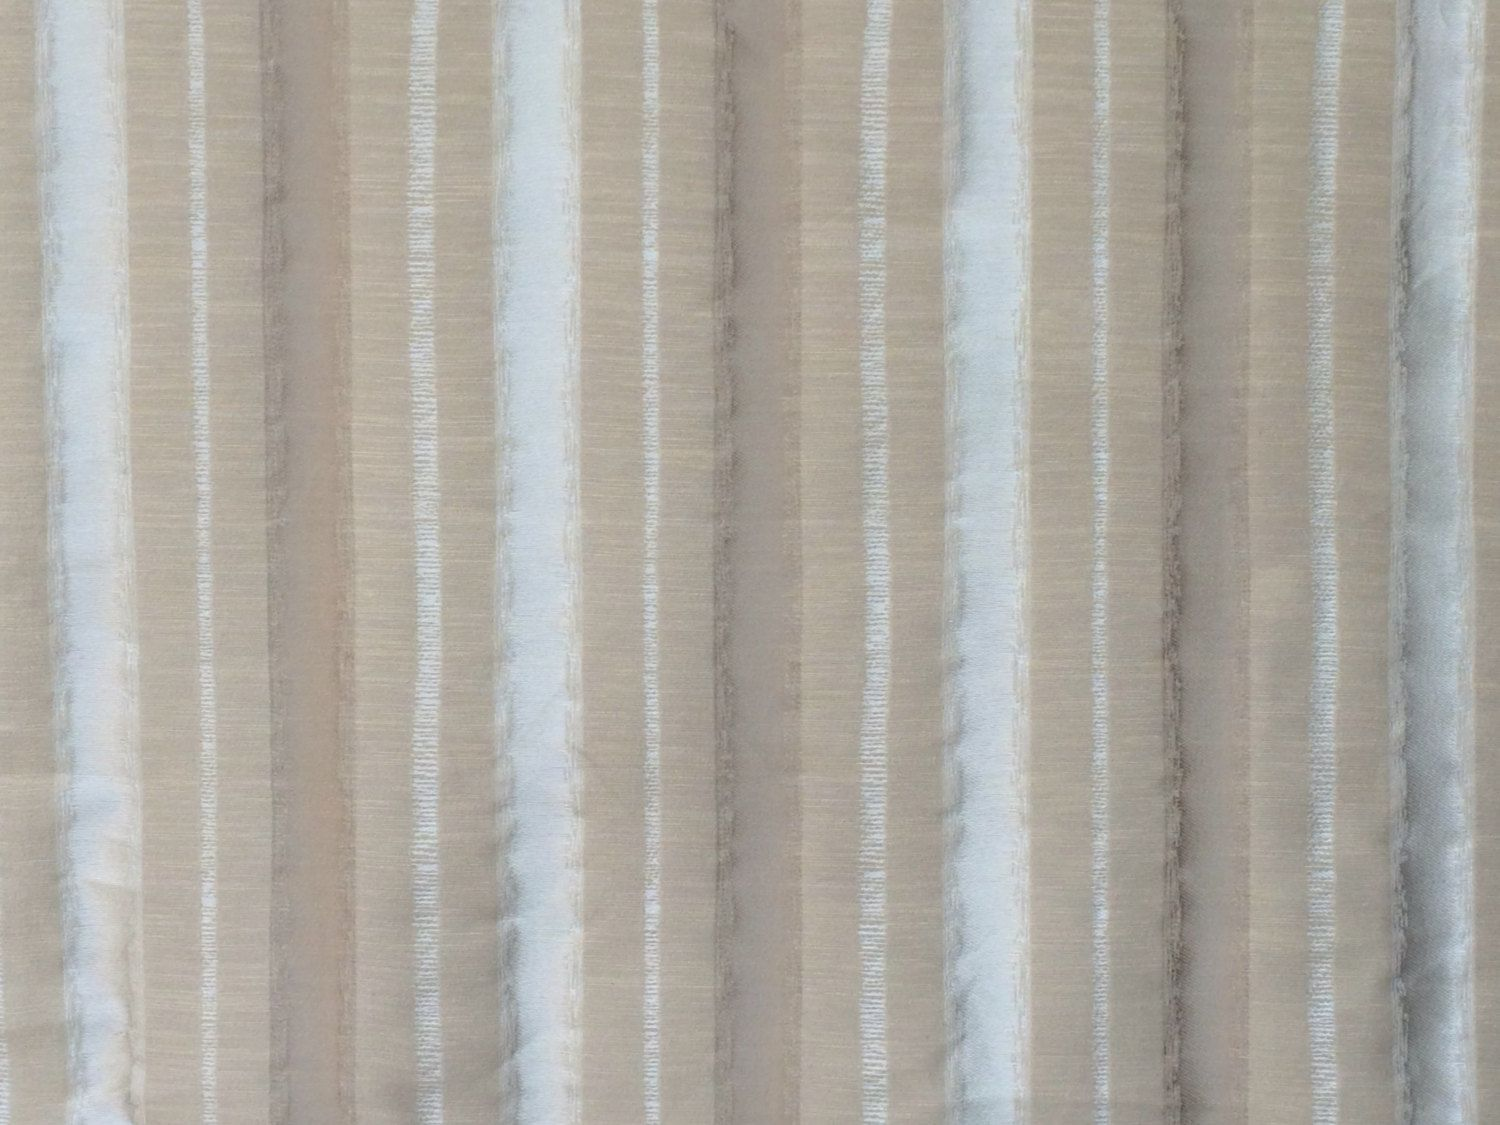 Beige Stripes Curtain Fabric By The Yard Upholstery Fabric Drapery ...